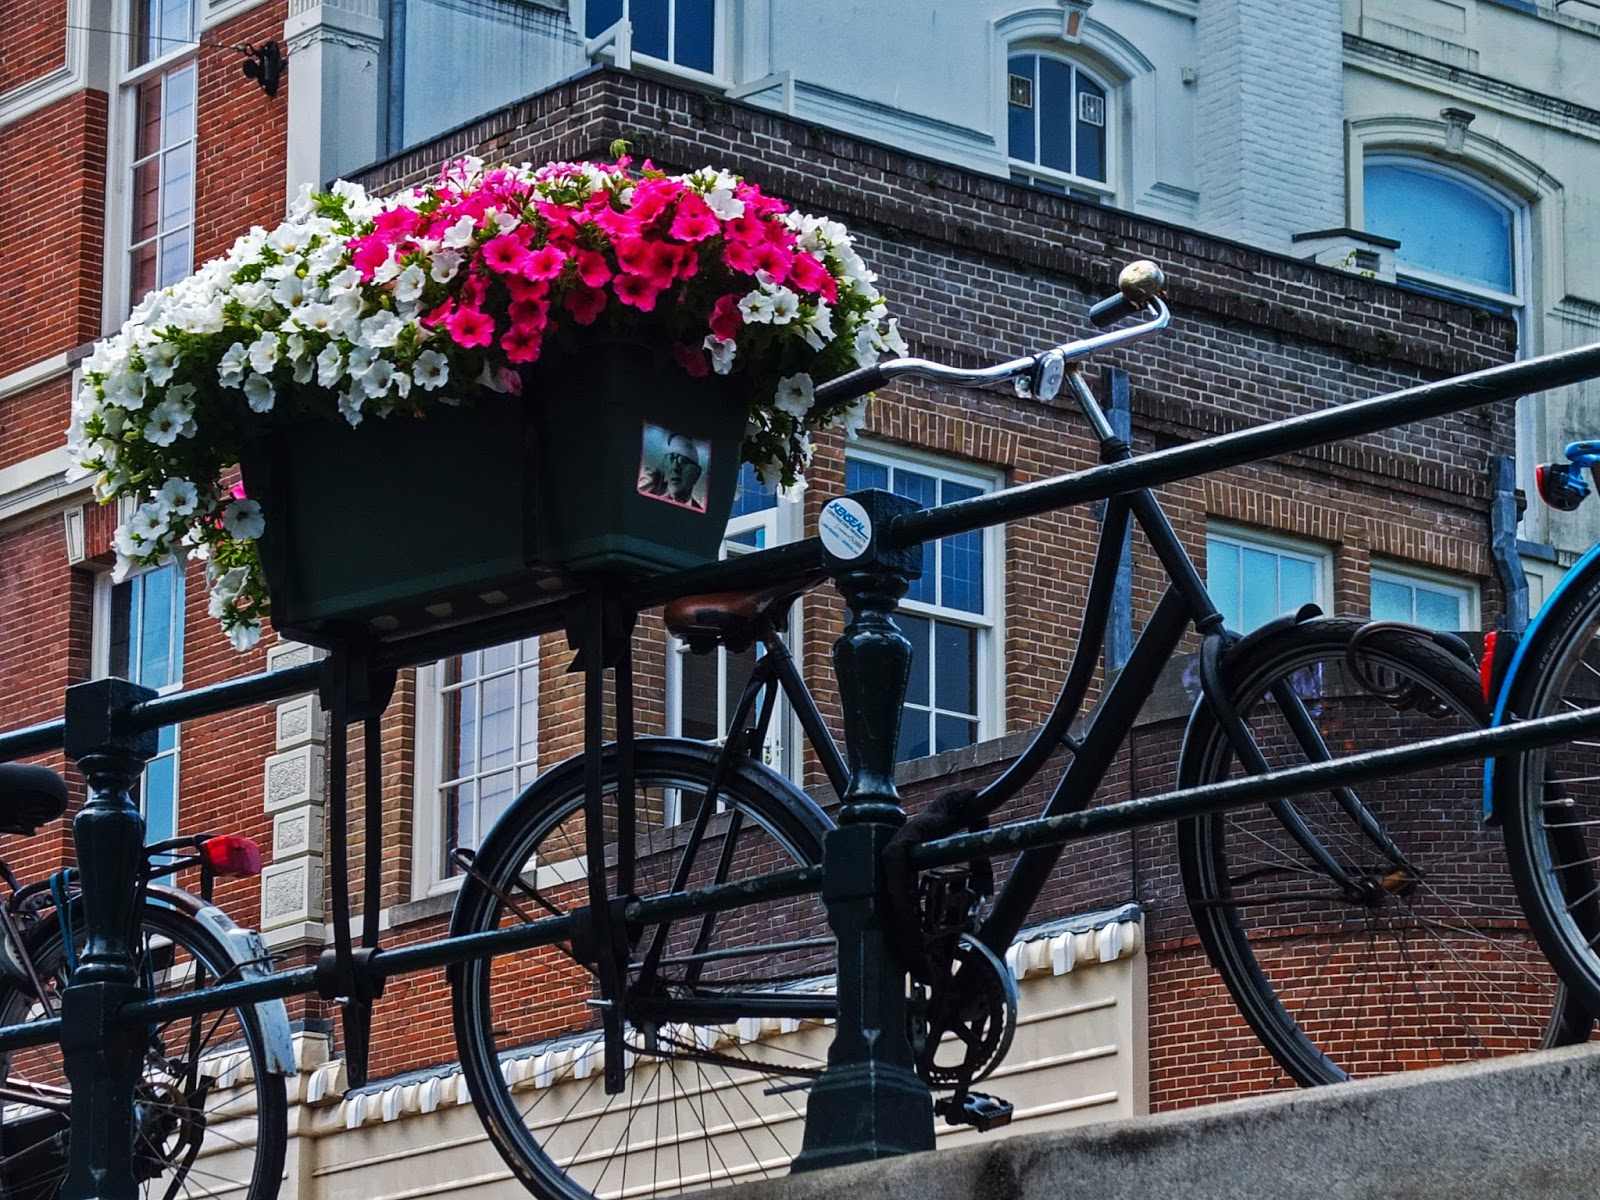 Plant pot of petunias hanging of a railing with bicycles leaning against the railing.